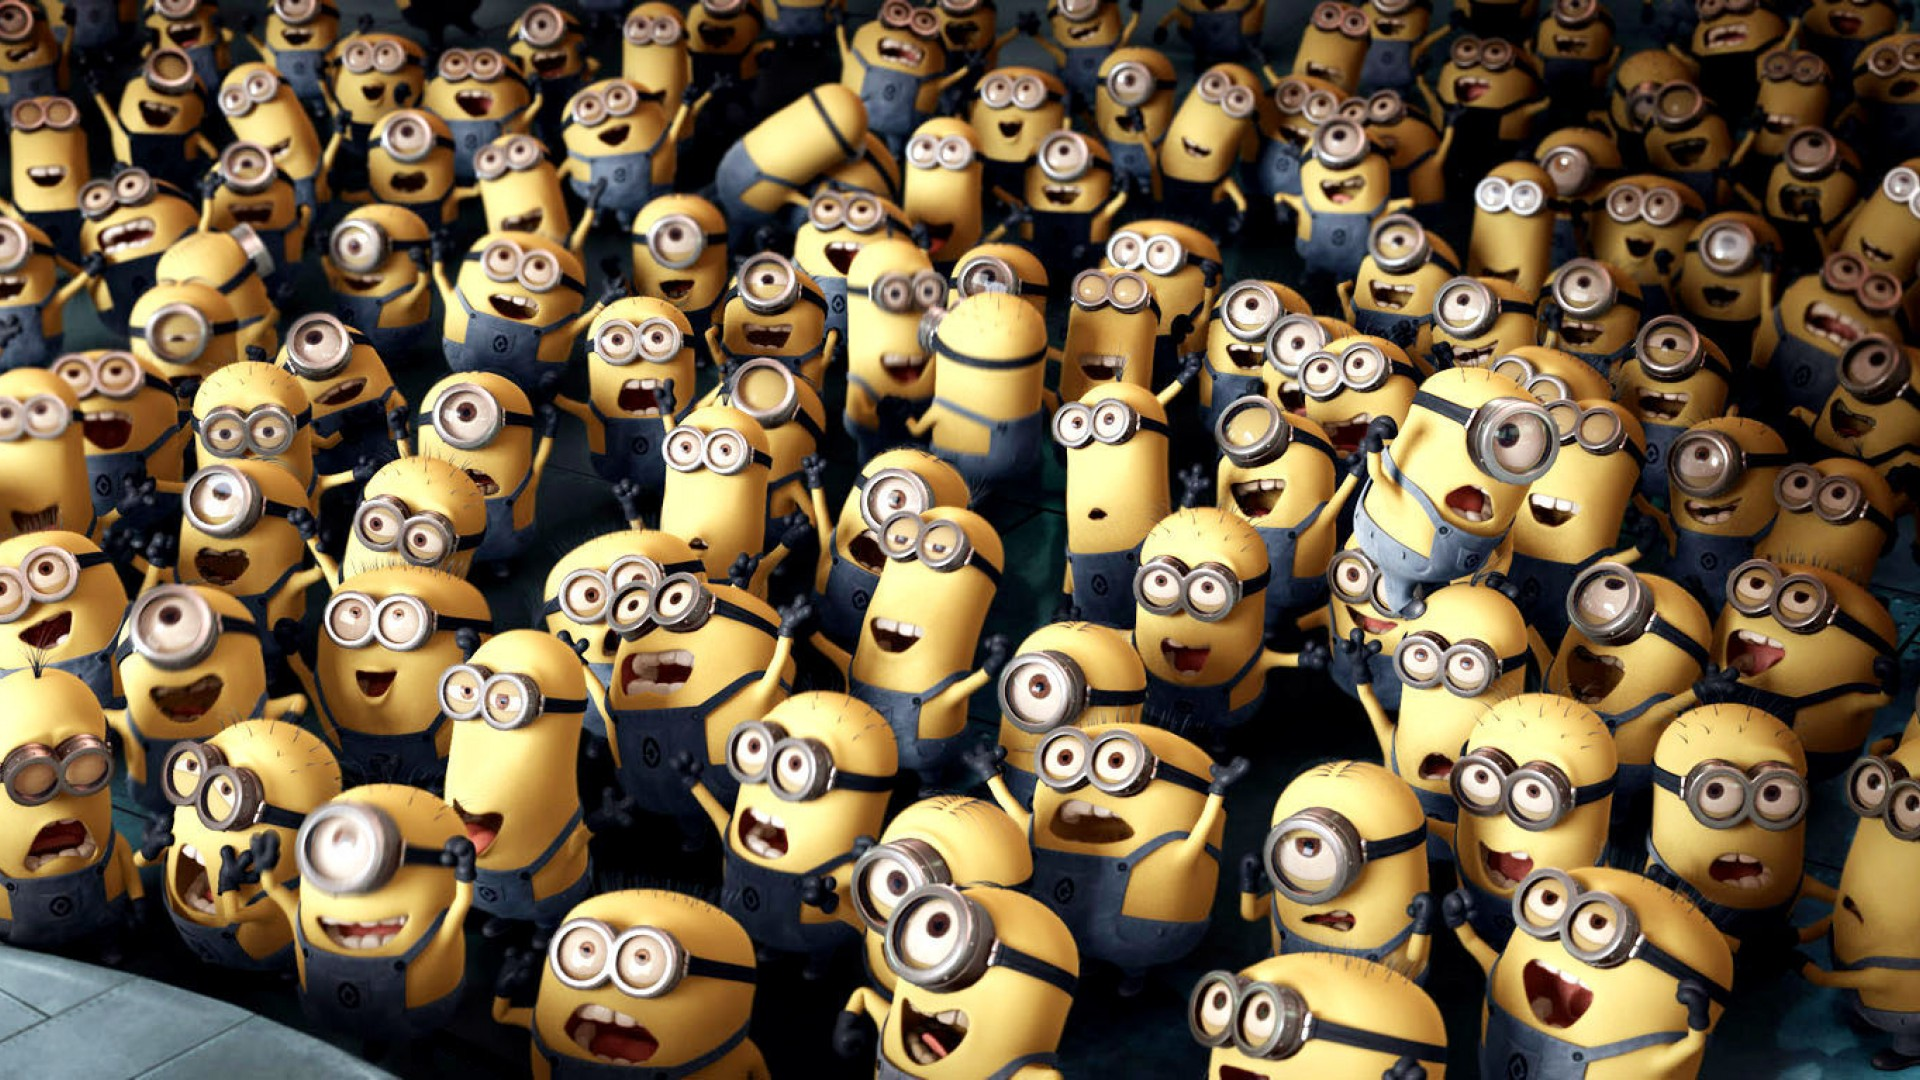 despicable-me-2-minions-desktop-wallpaper-hd-1920x1080-crowd